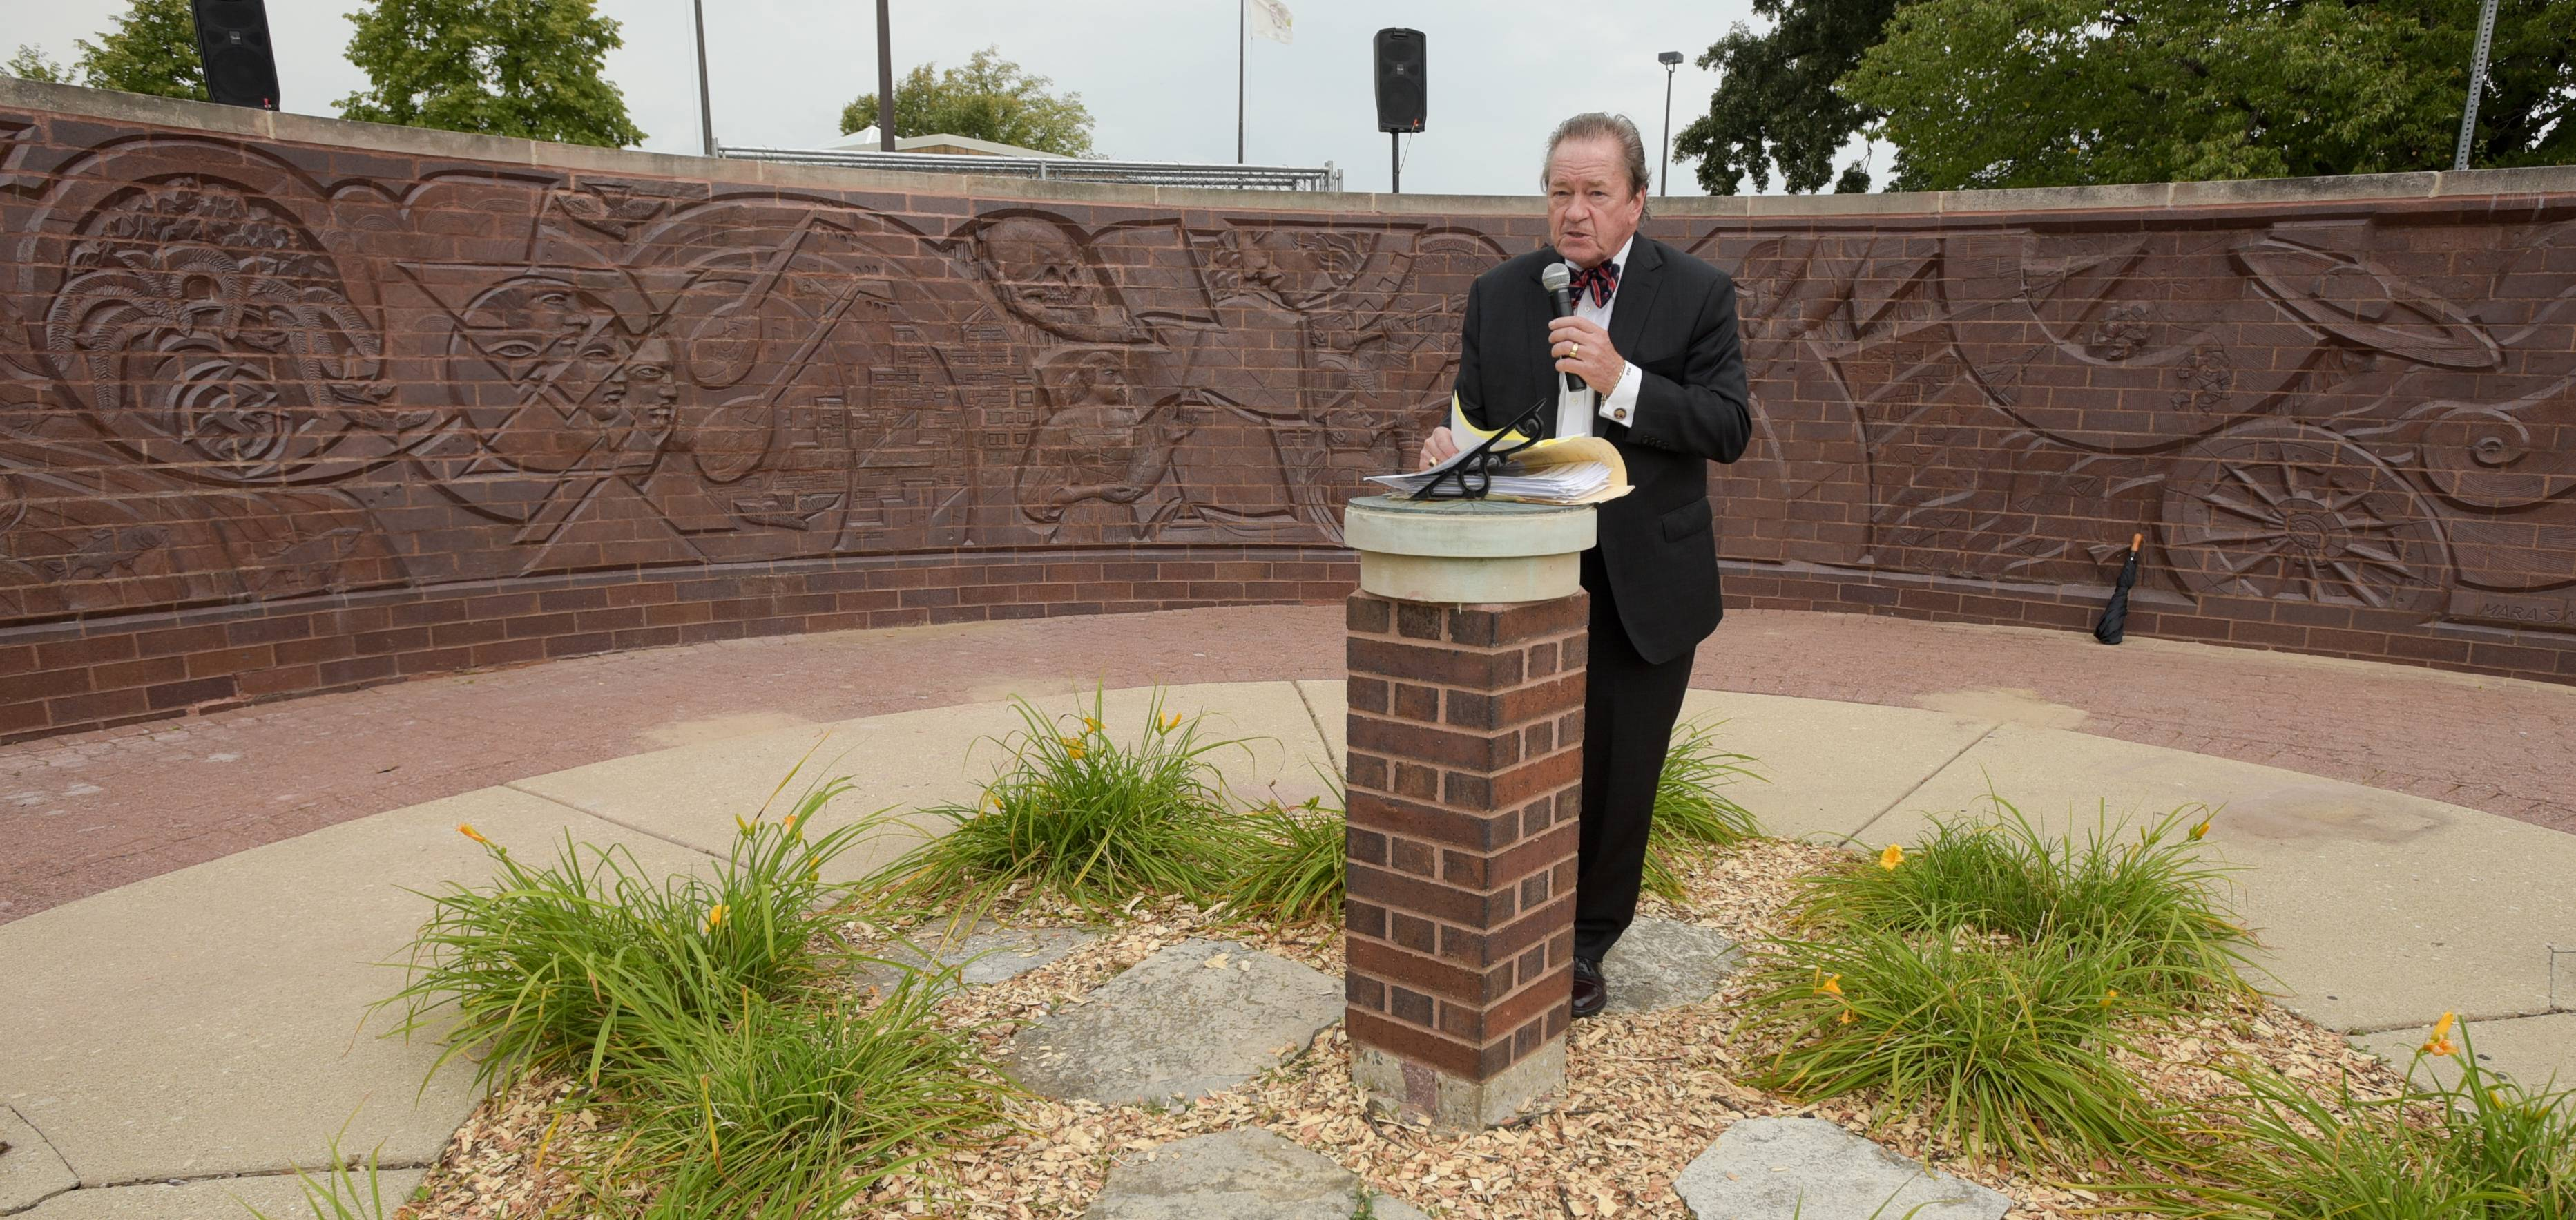 "Brand Bobosky, Chairman of Century Walk Corp. presides over the rededication Wednesday afternoon of the repaired sculpture ""Man's Search for Knowledge Through the Ages"" outside Nichols Library in downtown Naperville. The art was restored after it was damaged last summer in a crash."